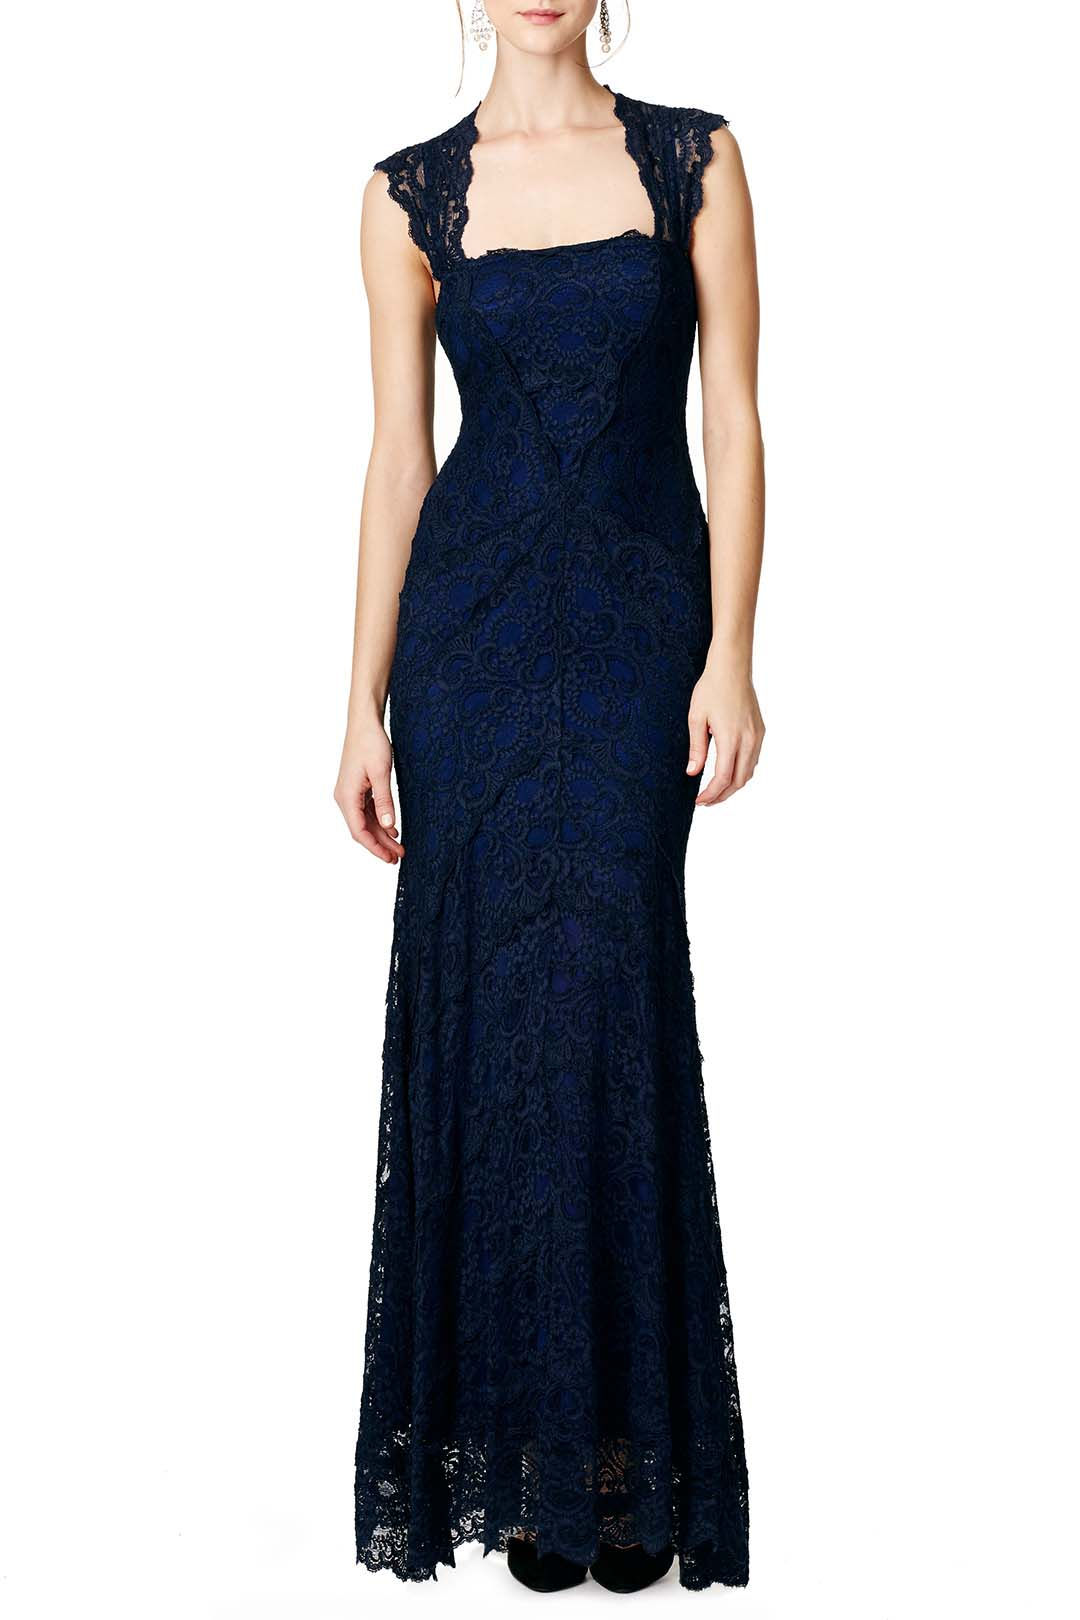 rent the runway nicole miller lady in waiting ball gown